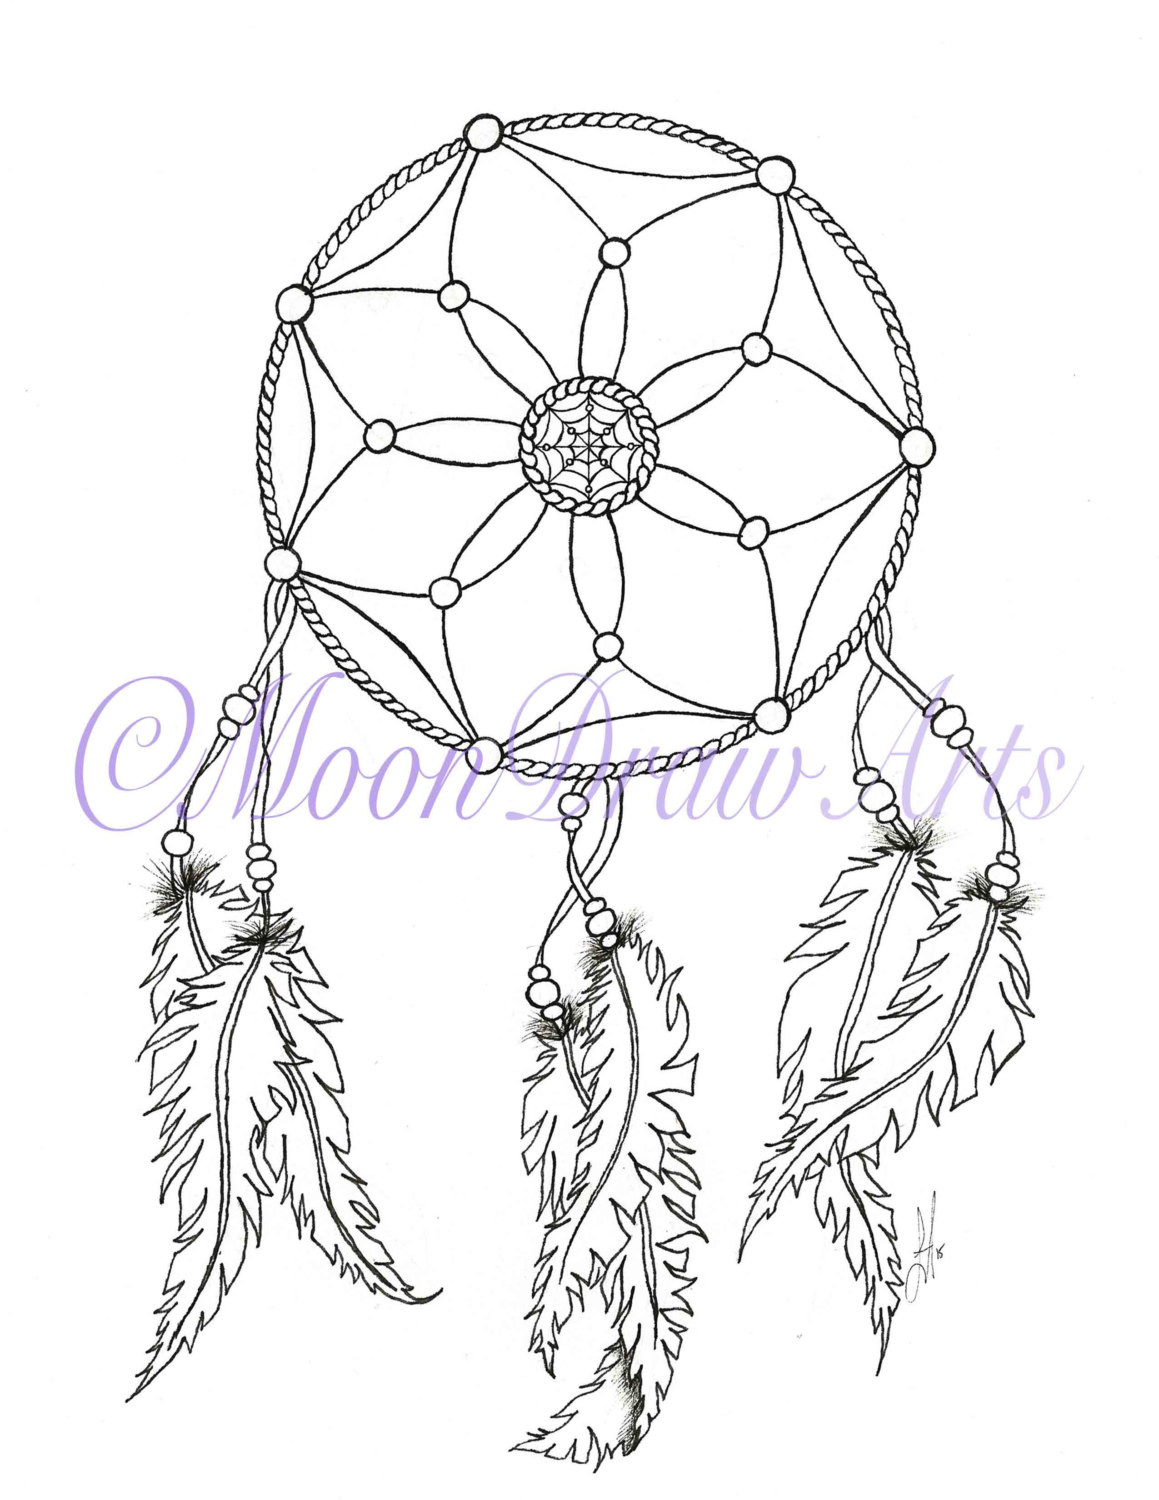 Dreamcatcher Printable Coloring Pages  Dream Catcher Printable Coloring Page Adult by MoonDrawArts